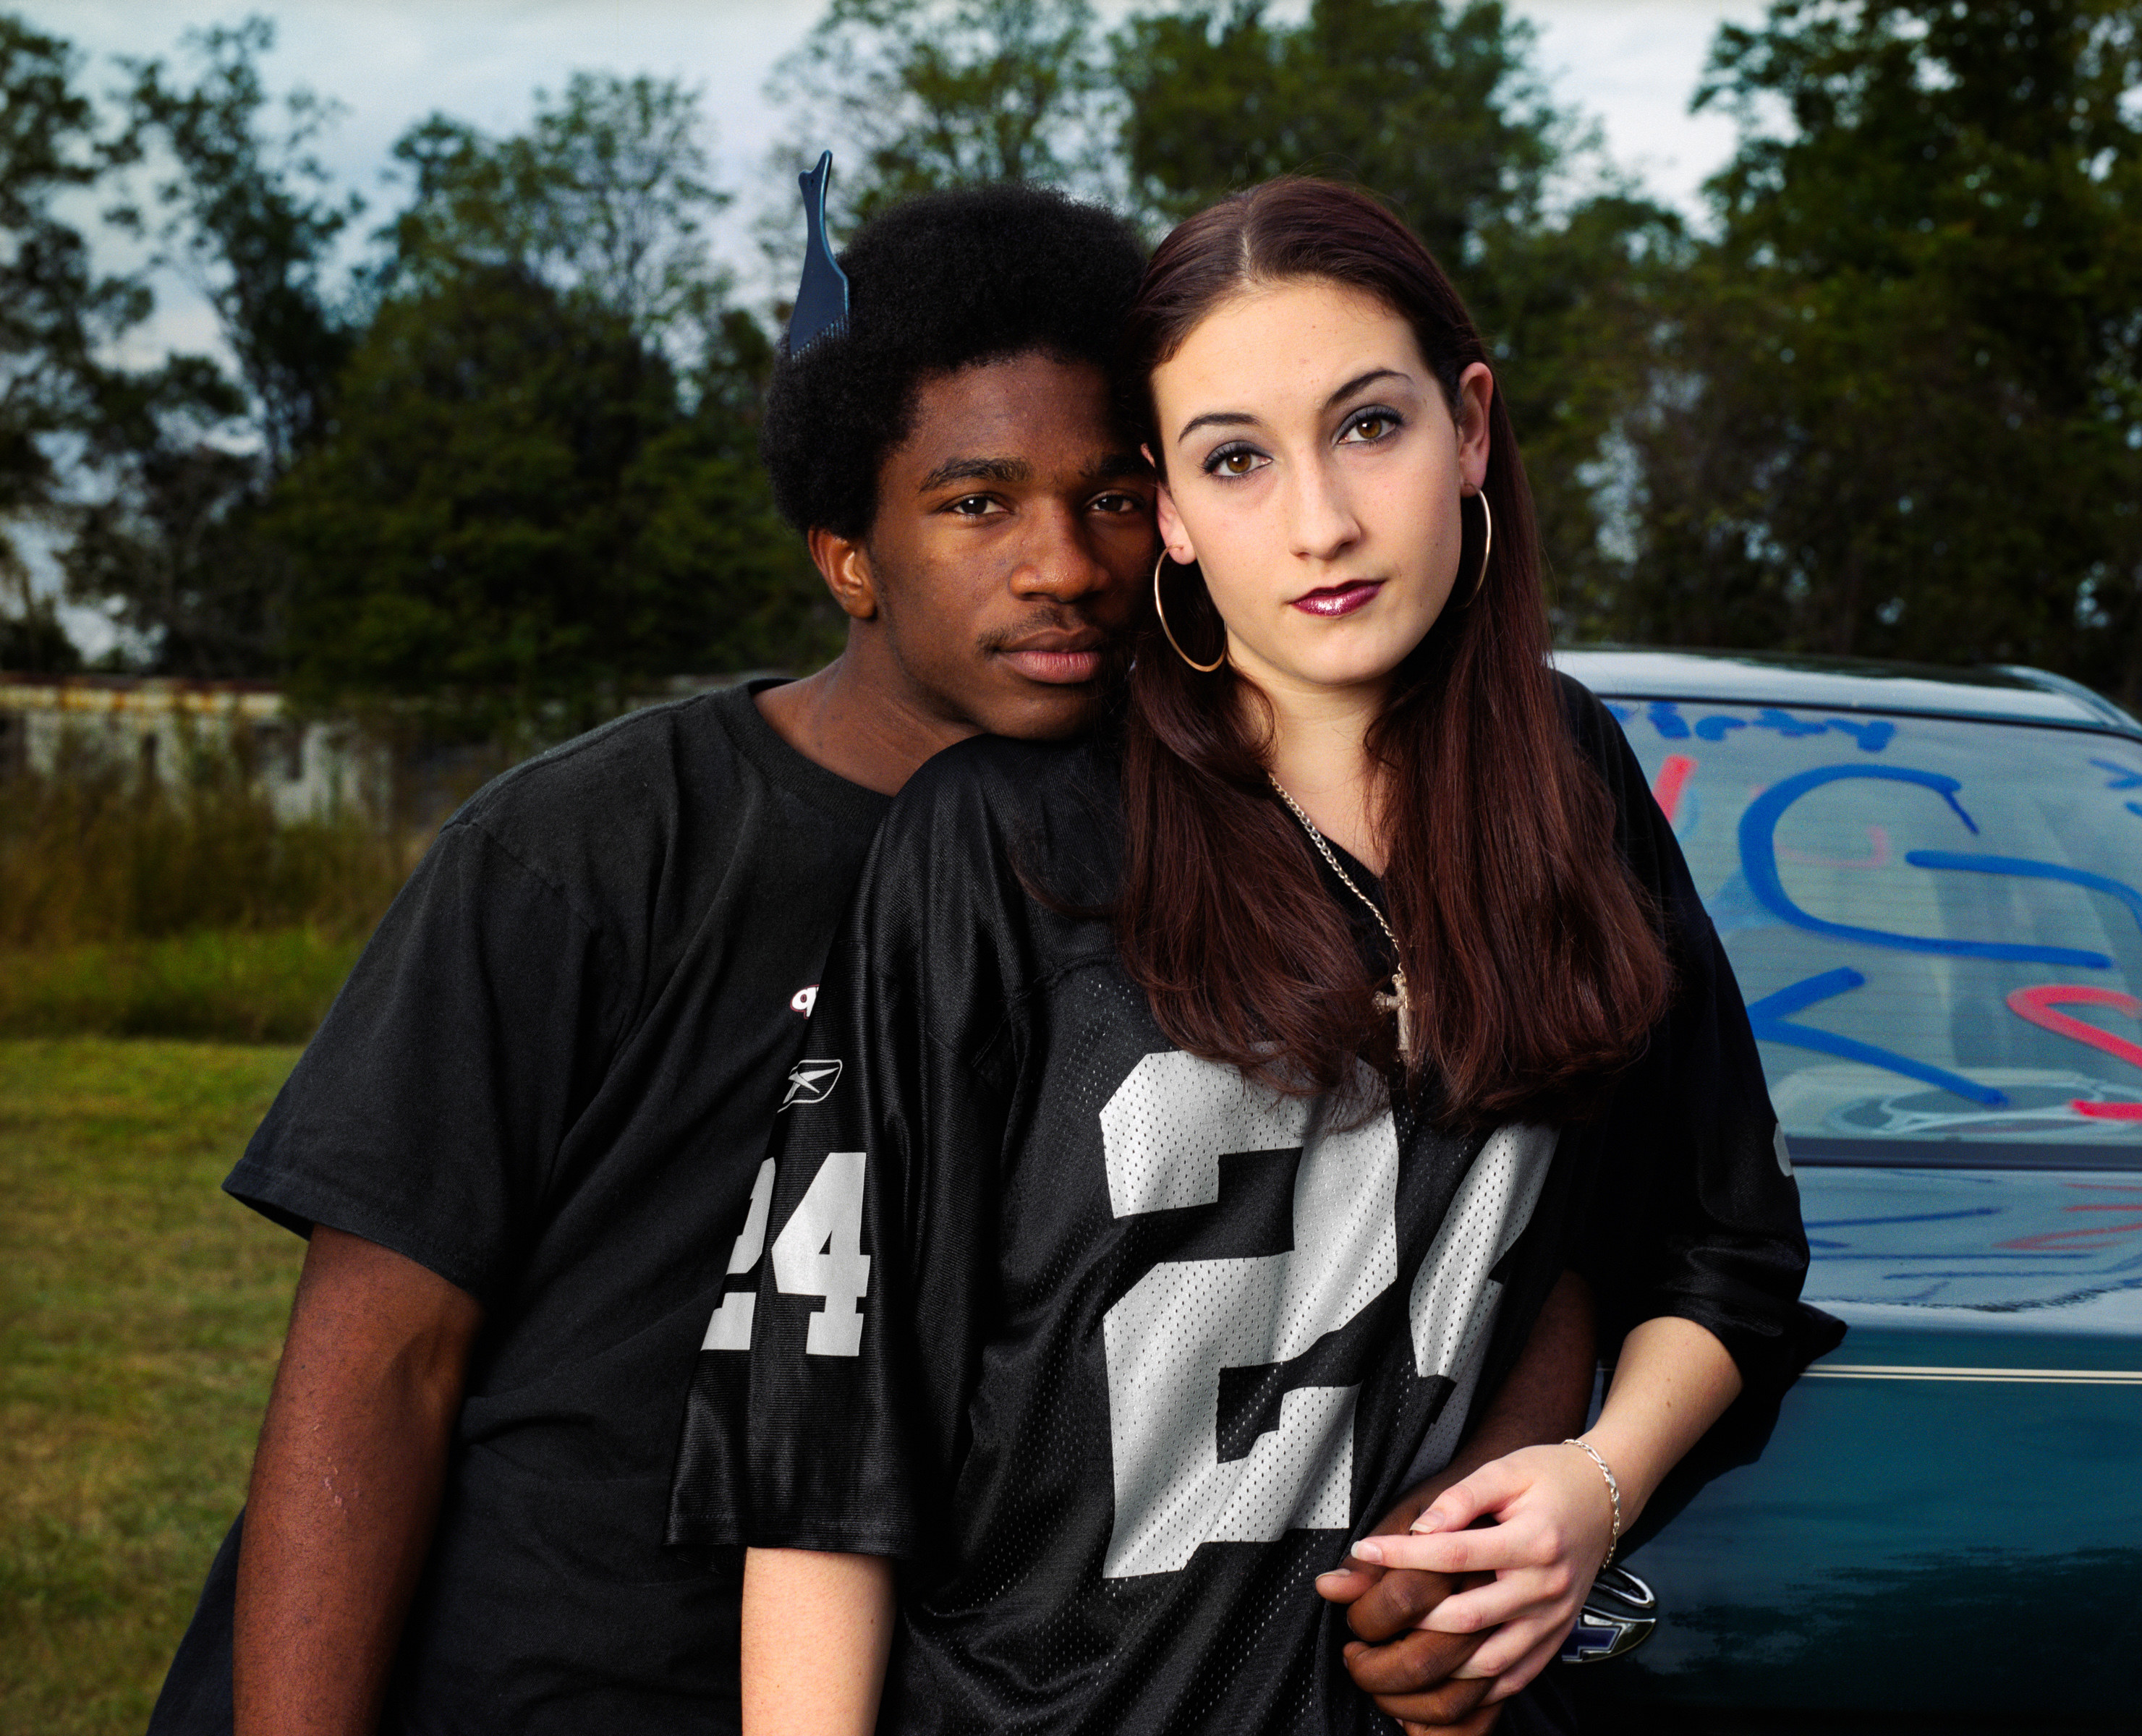 A black teenager with an afro and his arm around a white girl in a football jersey